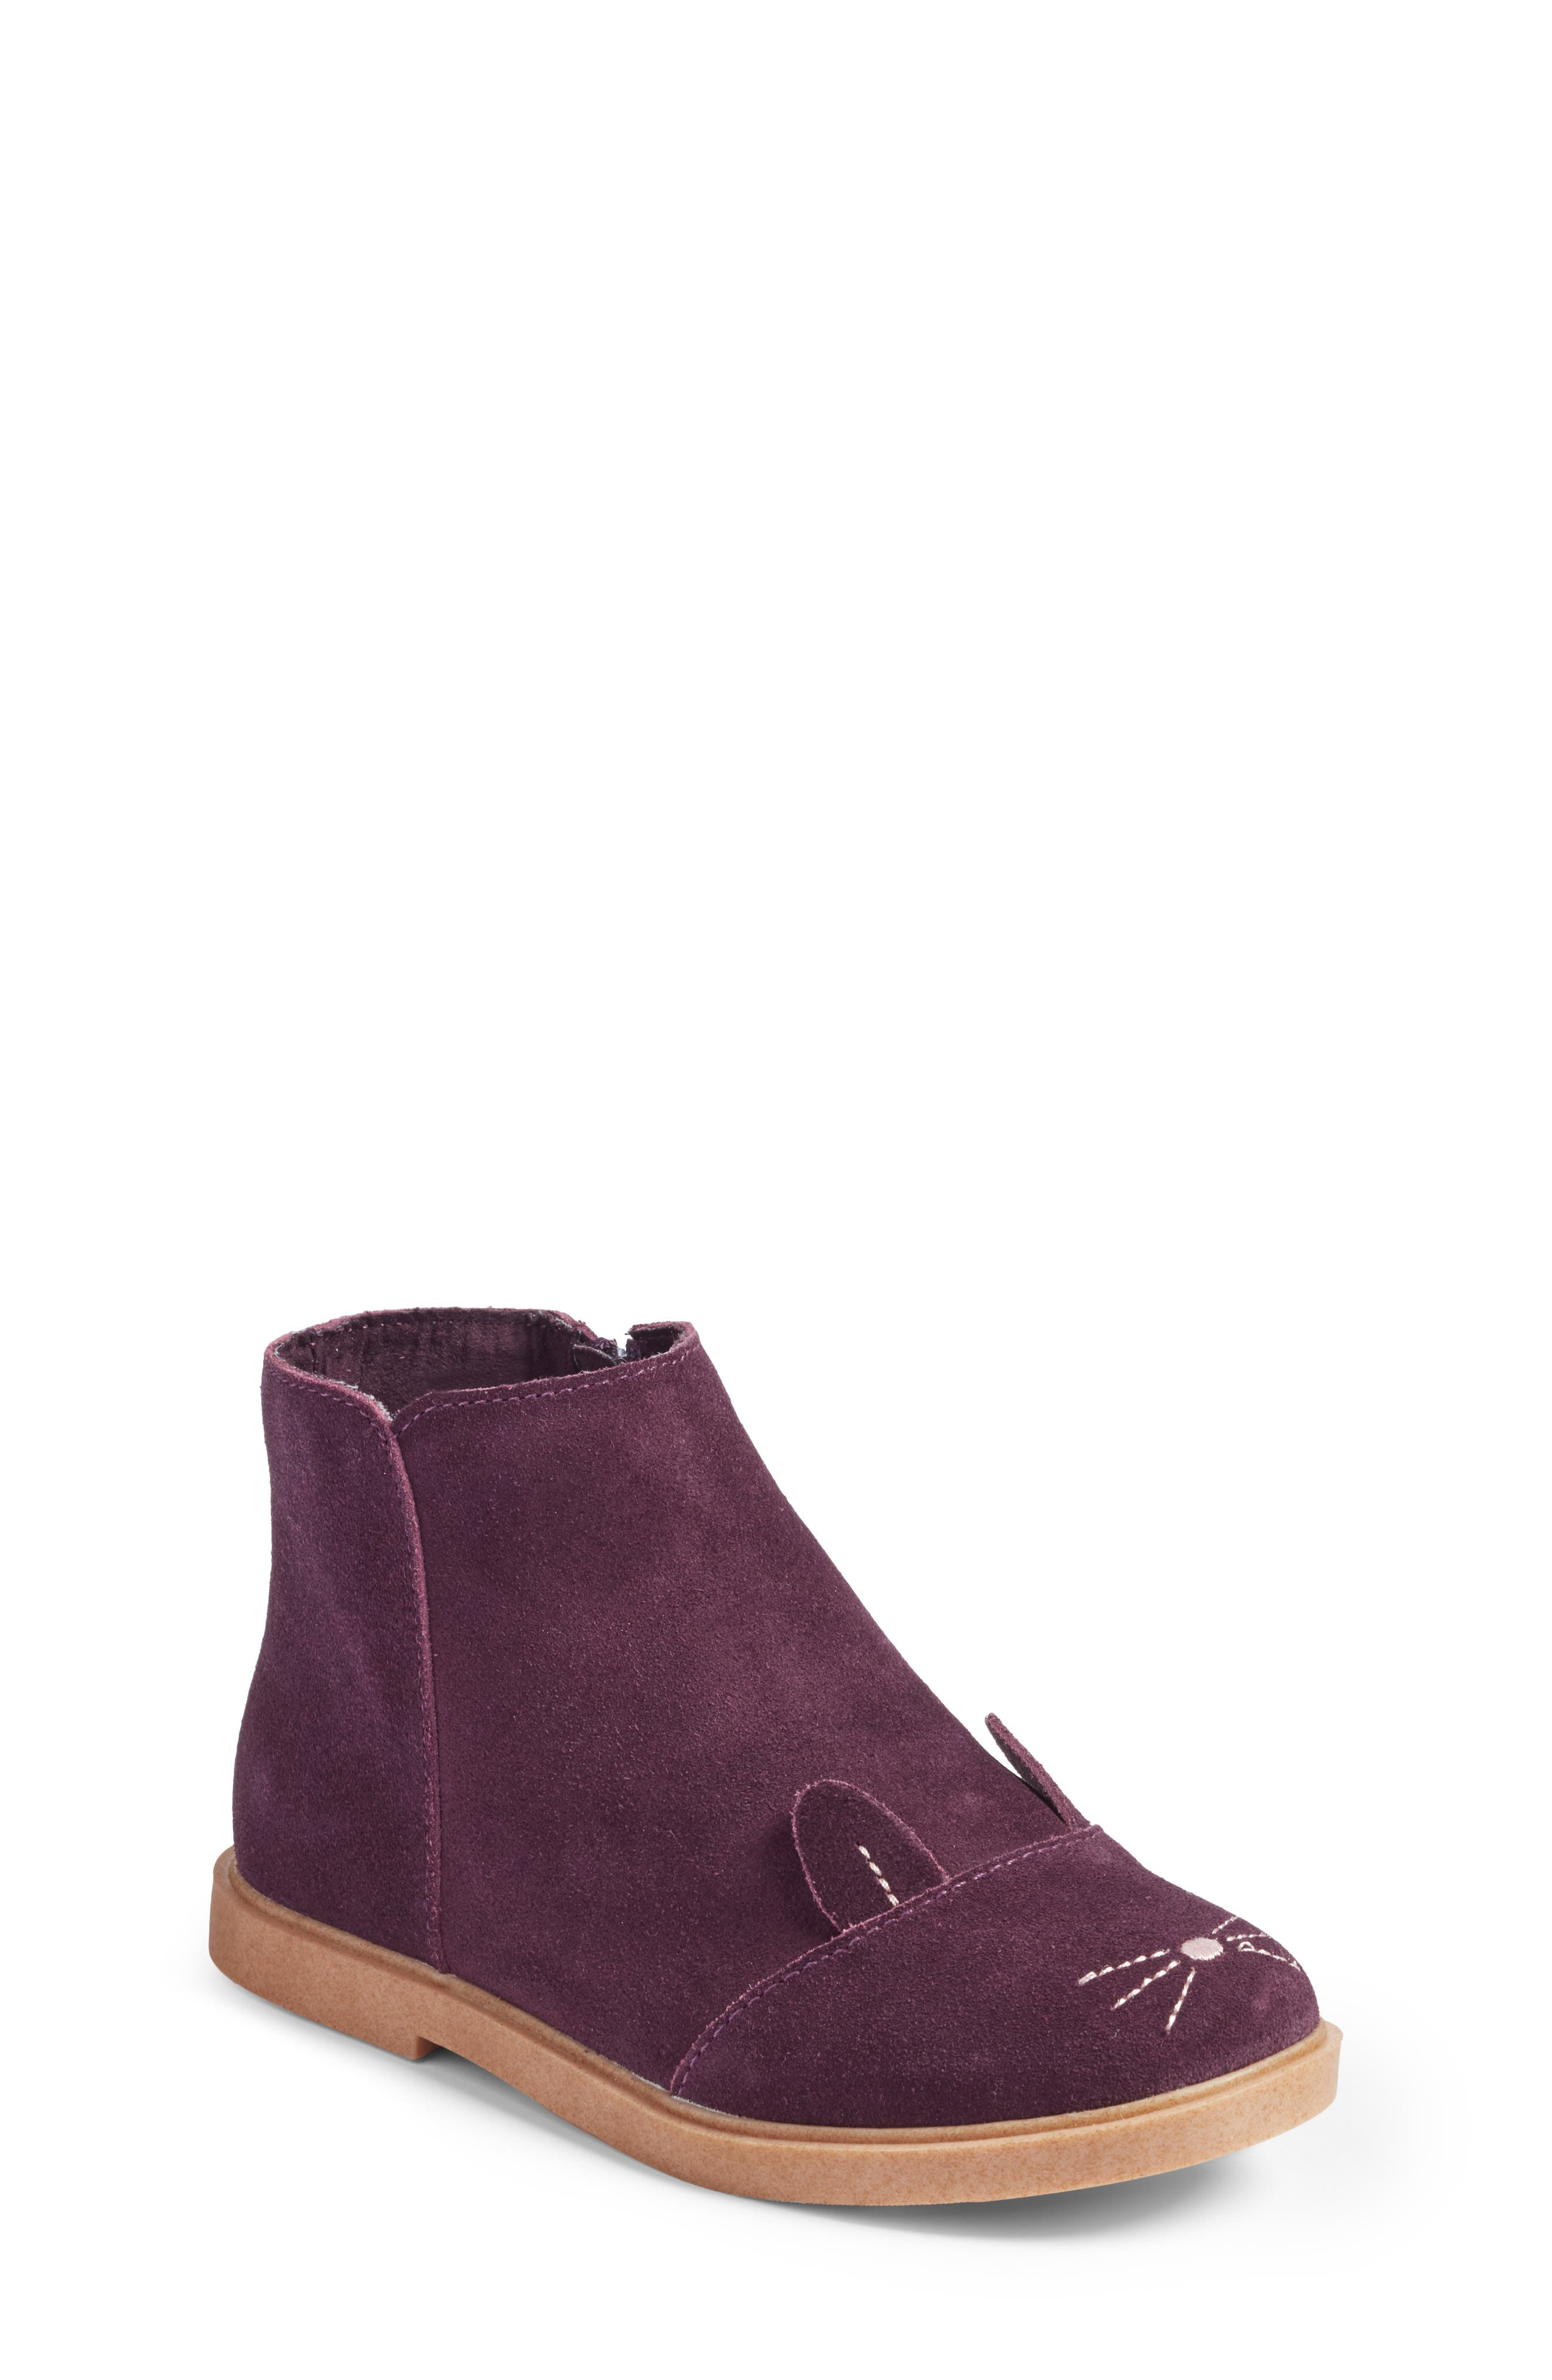 Bunny Boot,                         Main,                         color, Berry Leather